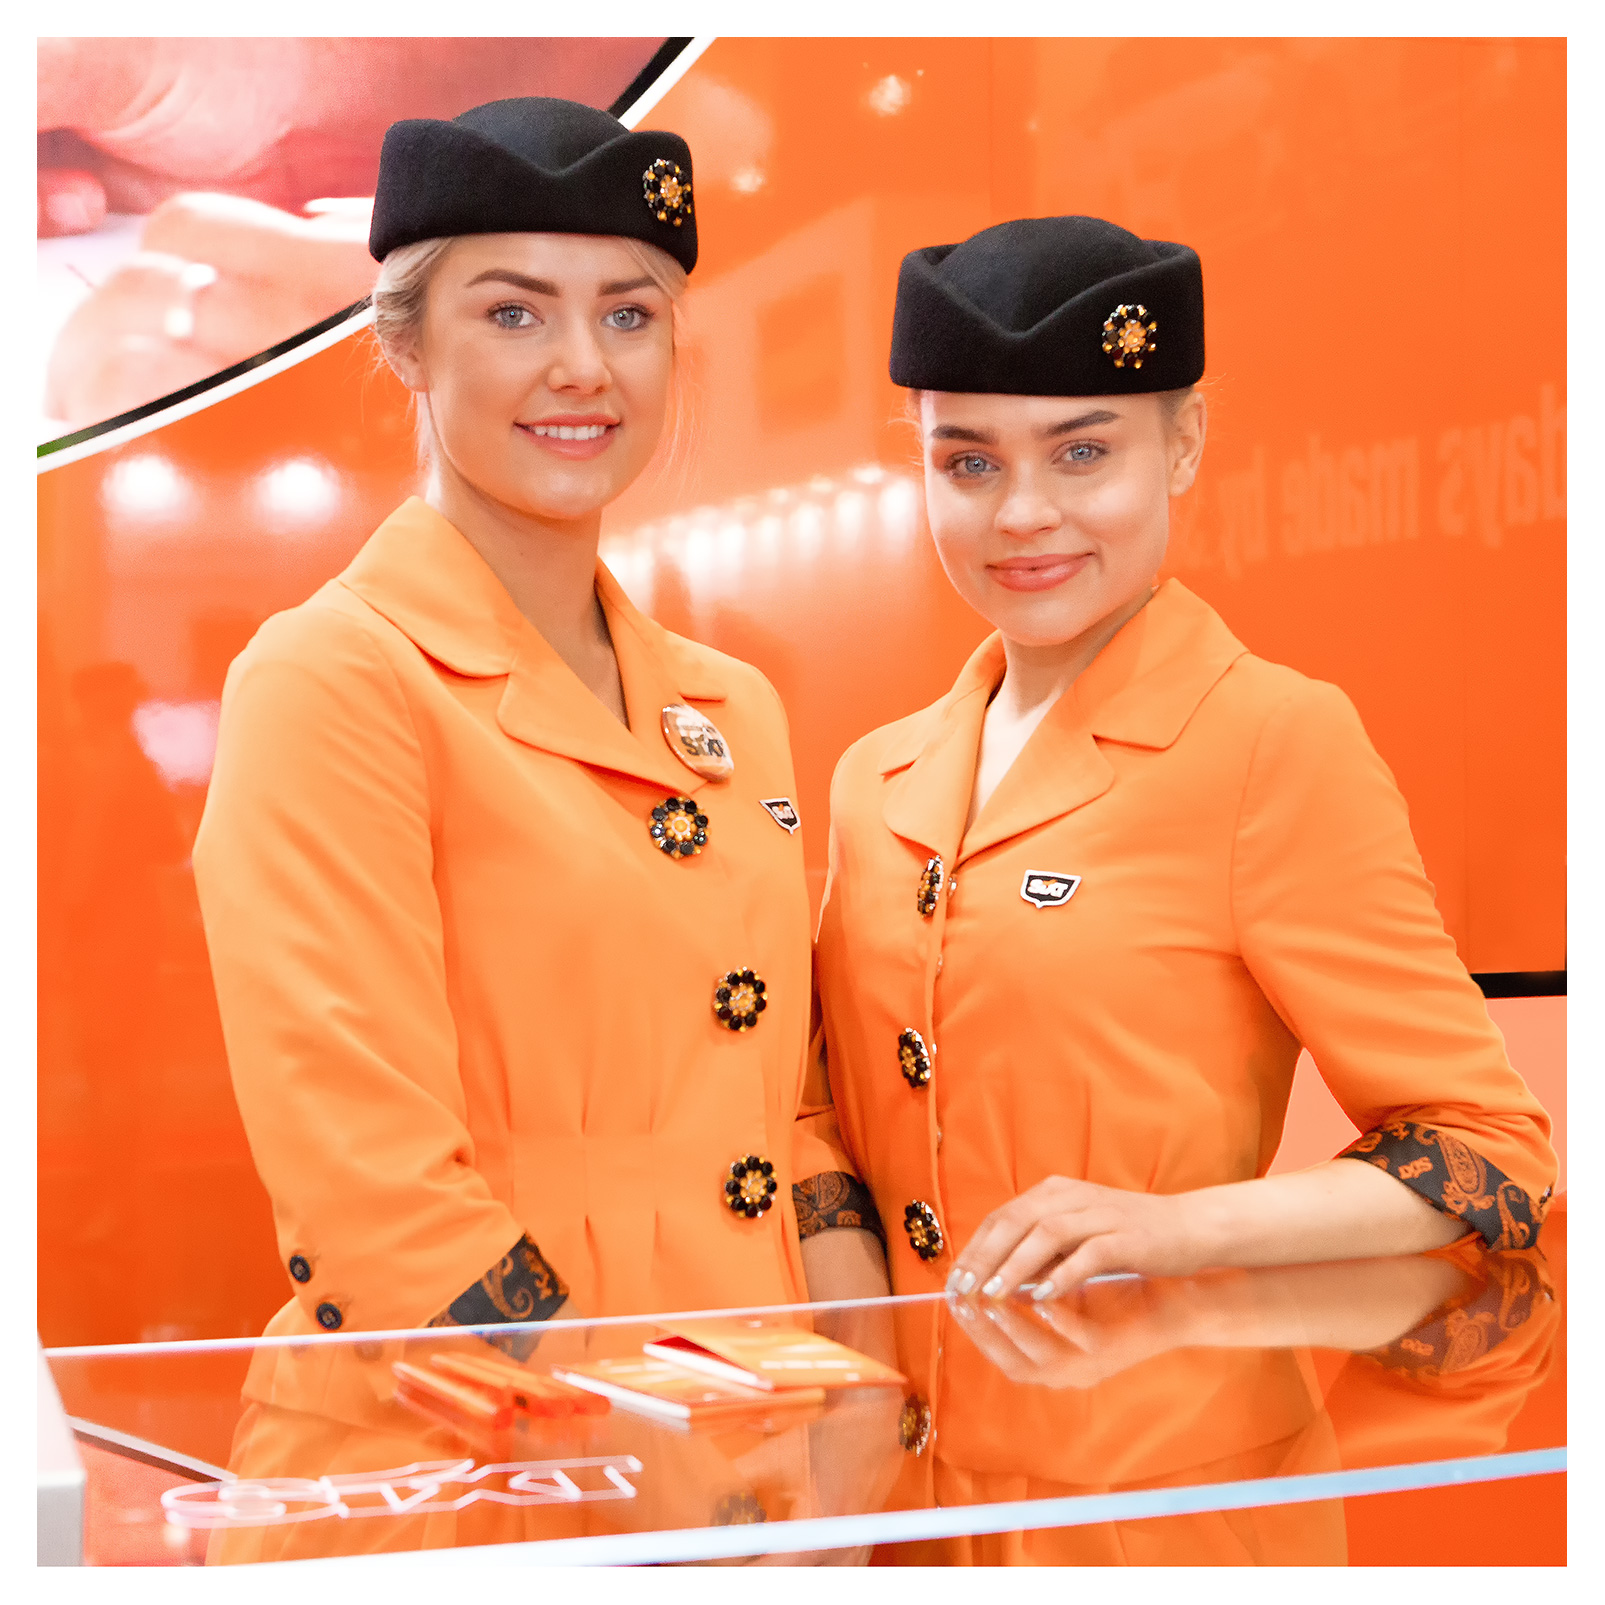 PR photography: Exhibition Hostesses for Sixt Car Hire at WTM 2018, ExCel London